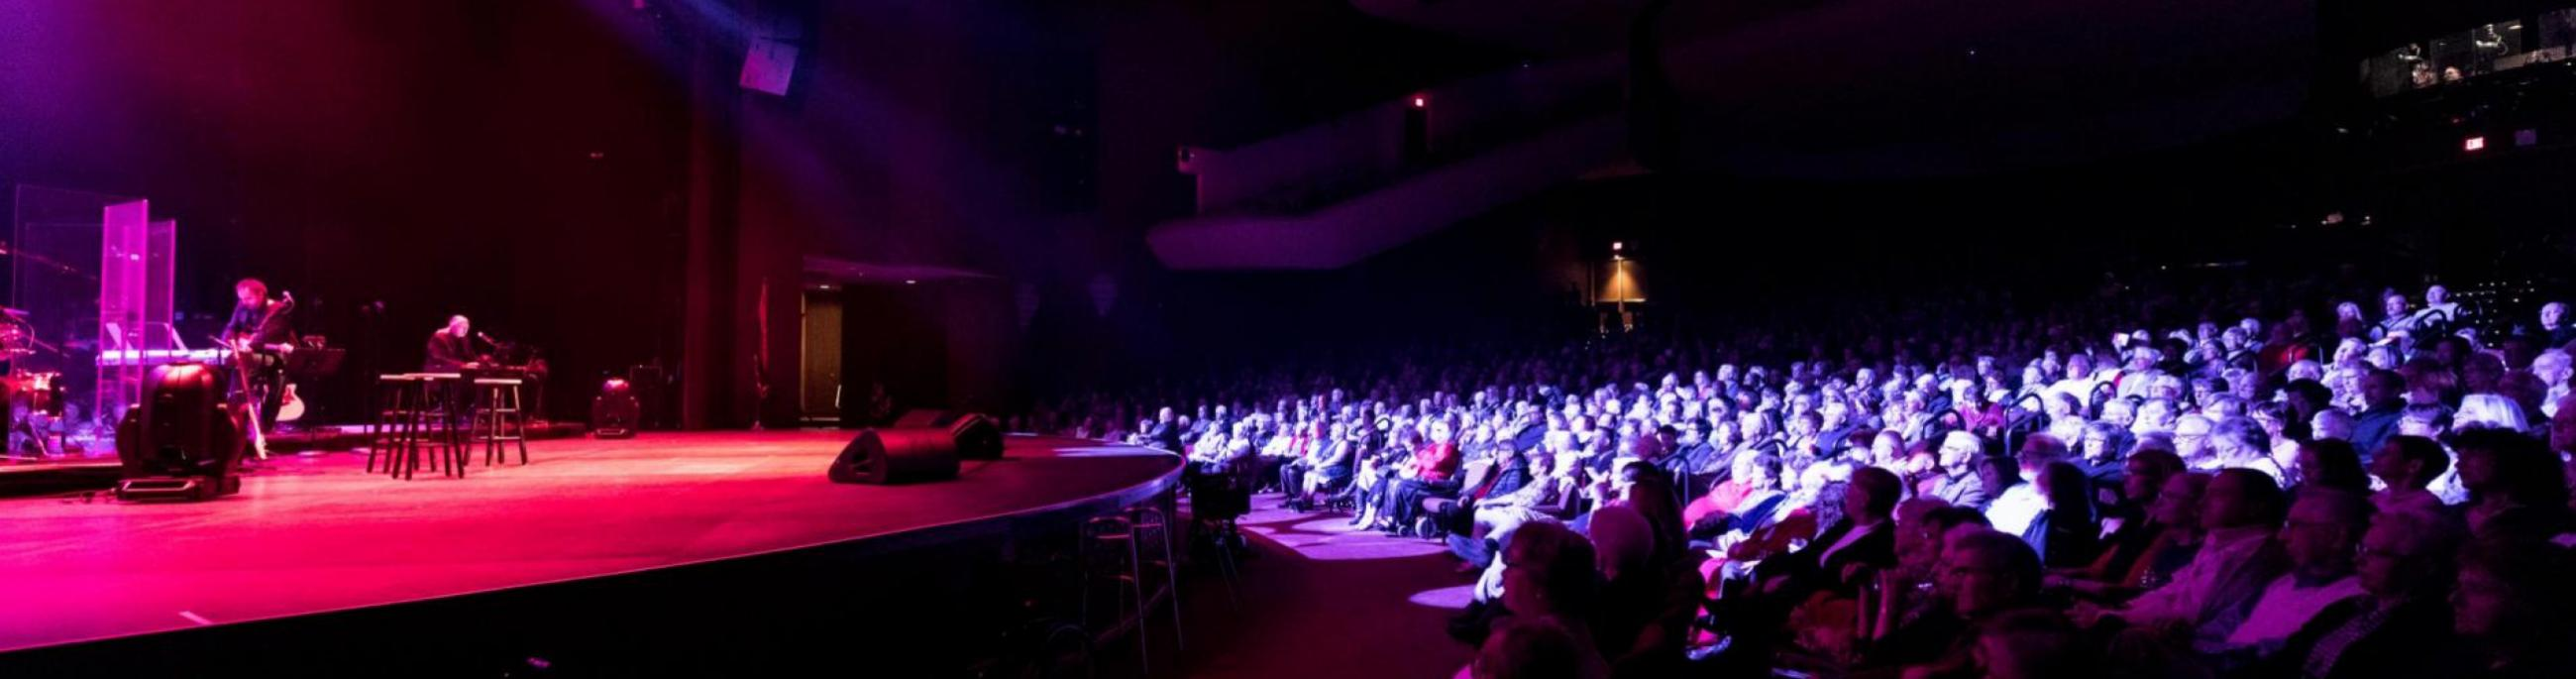 Mainstage accommodates largest shows with seating